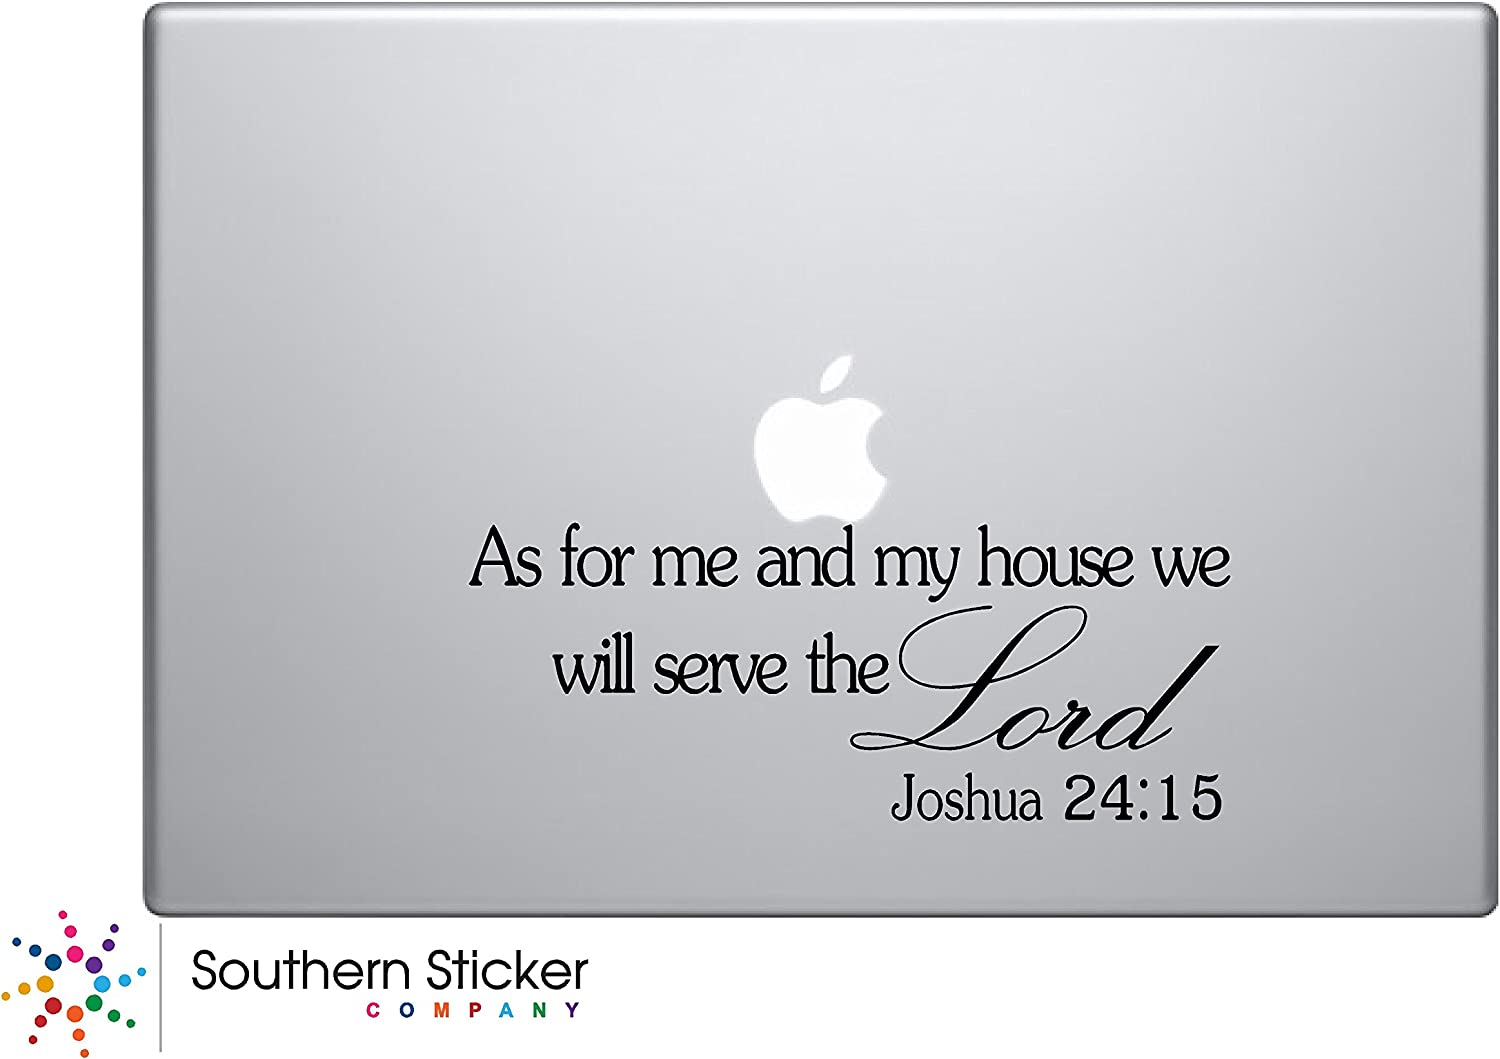 As for Me and My House We Will Serve the Lord. Joshua 24:15 Bible Verse Text Vinyl Car Sticker Silhouette Keypad Track Pad Decal Laptop Skin Ipad Macbook Window Truck Motorcycle